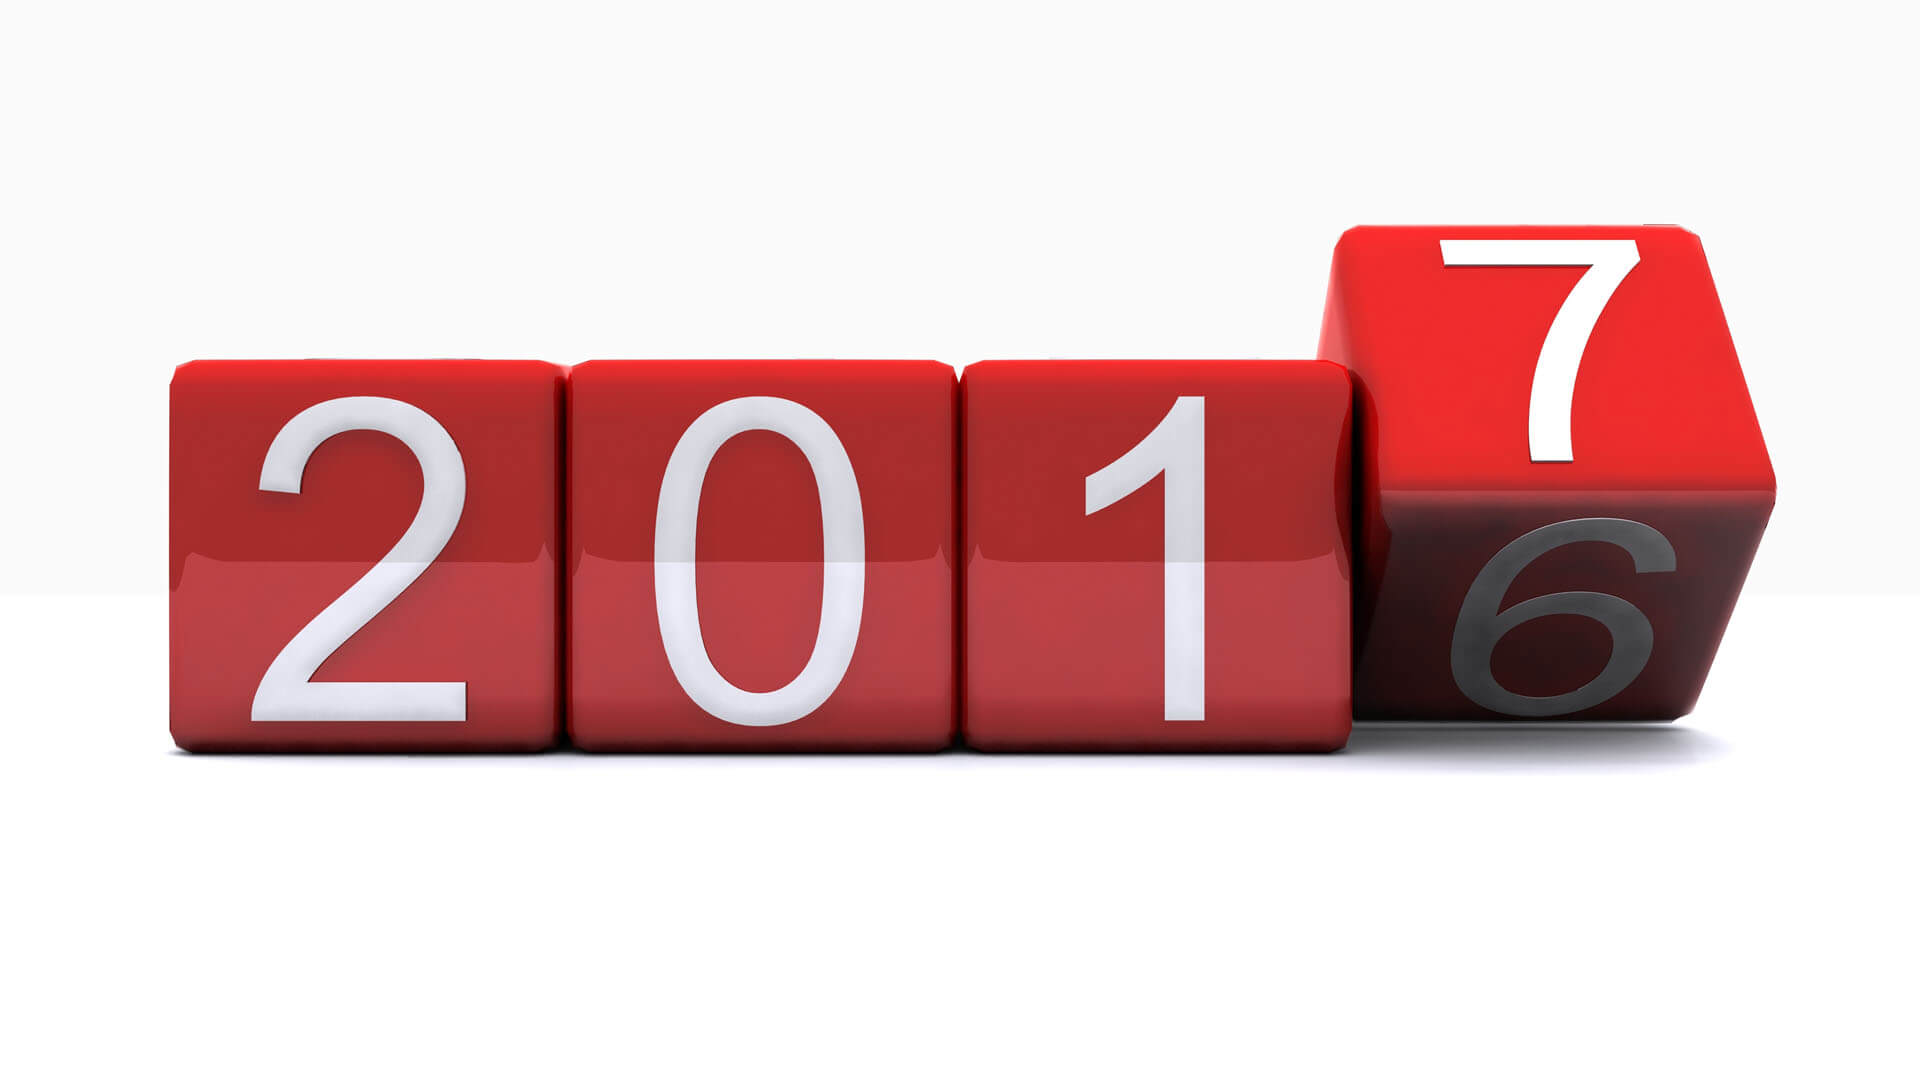 ss-new-year-resolution-2017